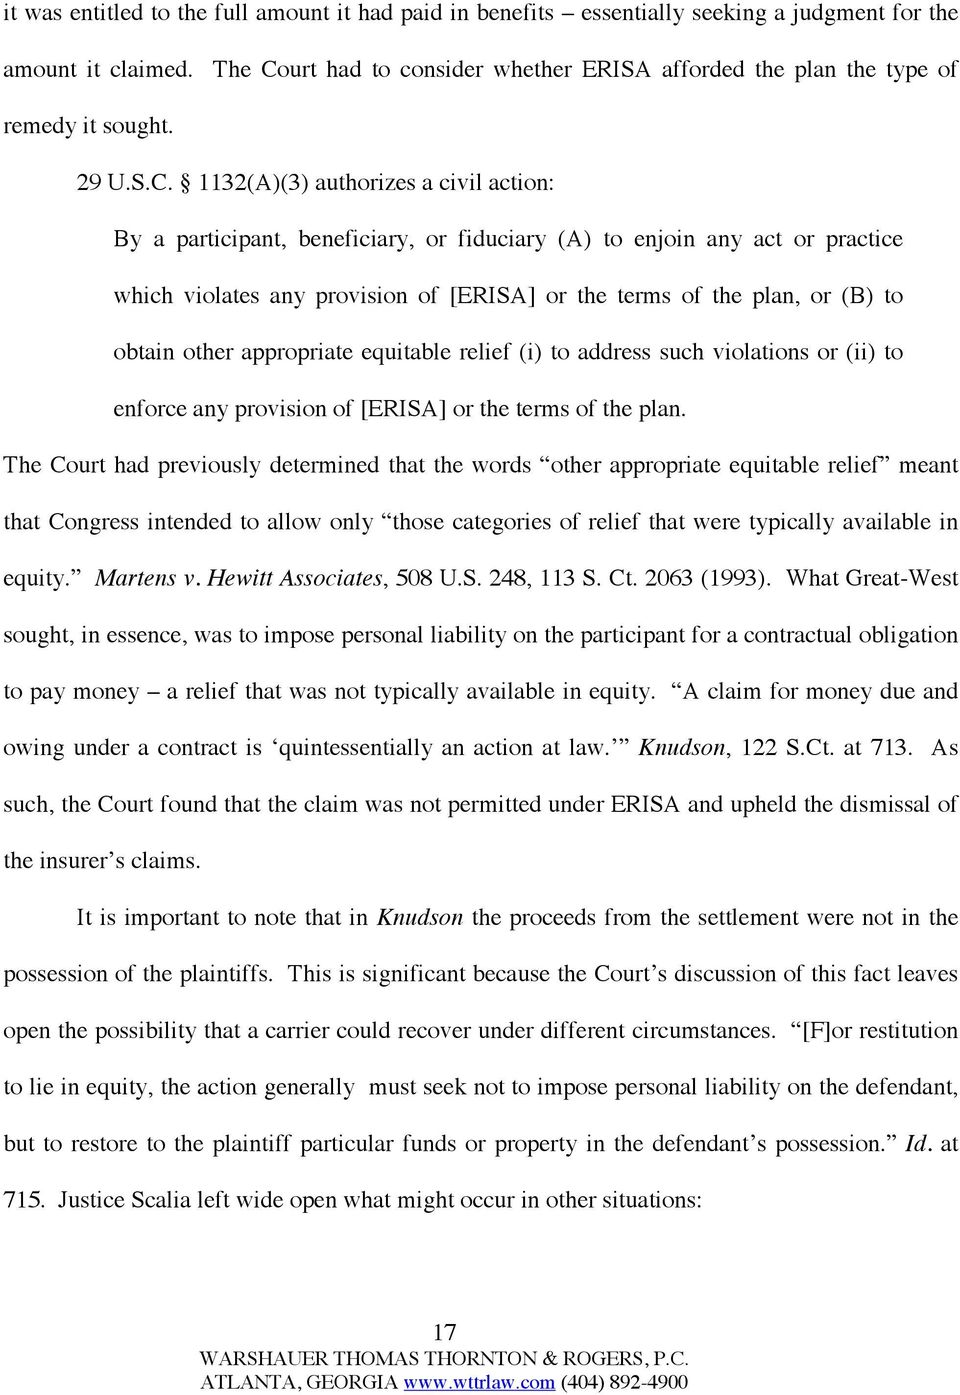 urt had to consider whether ERISA afforded the plan the type of remedy it sought. 29 U.S.C.